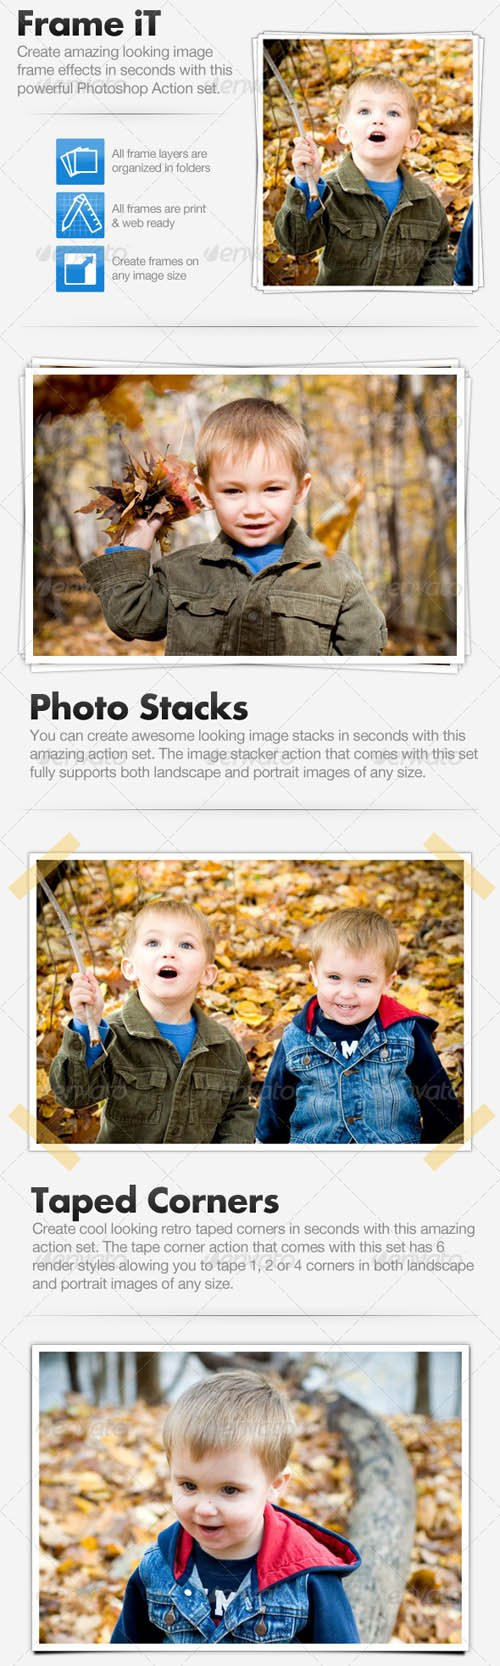 GraphicRiver Frame iT - Image Framing Action